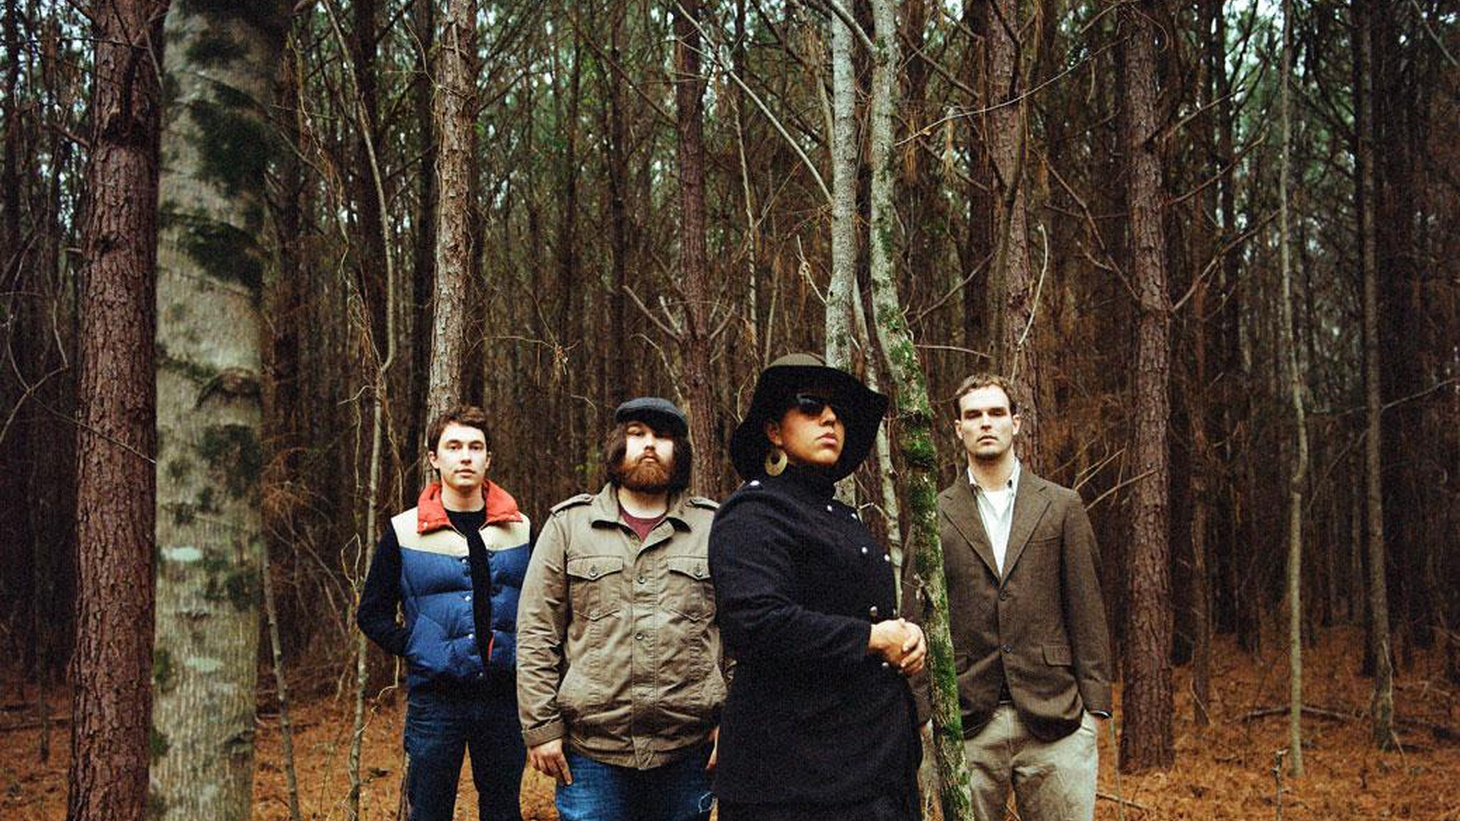 Alabama Shakes is one of the most buzzed about bands in indie music right now and for good reason.